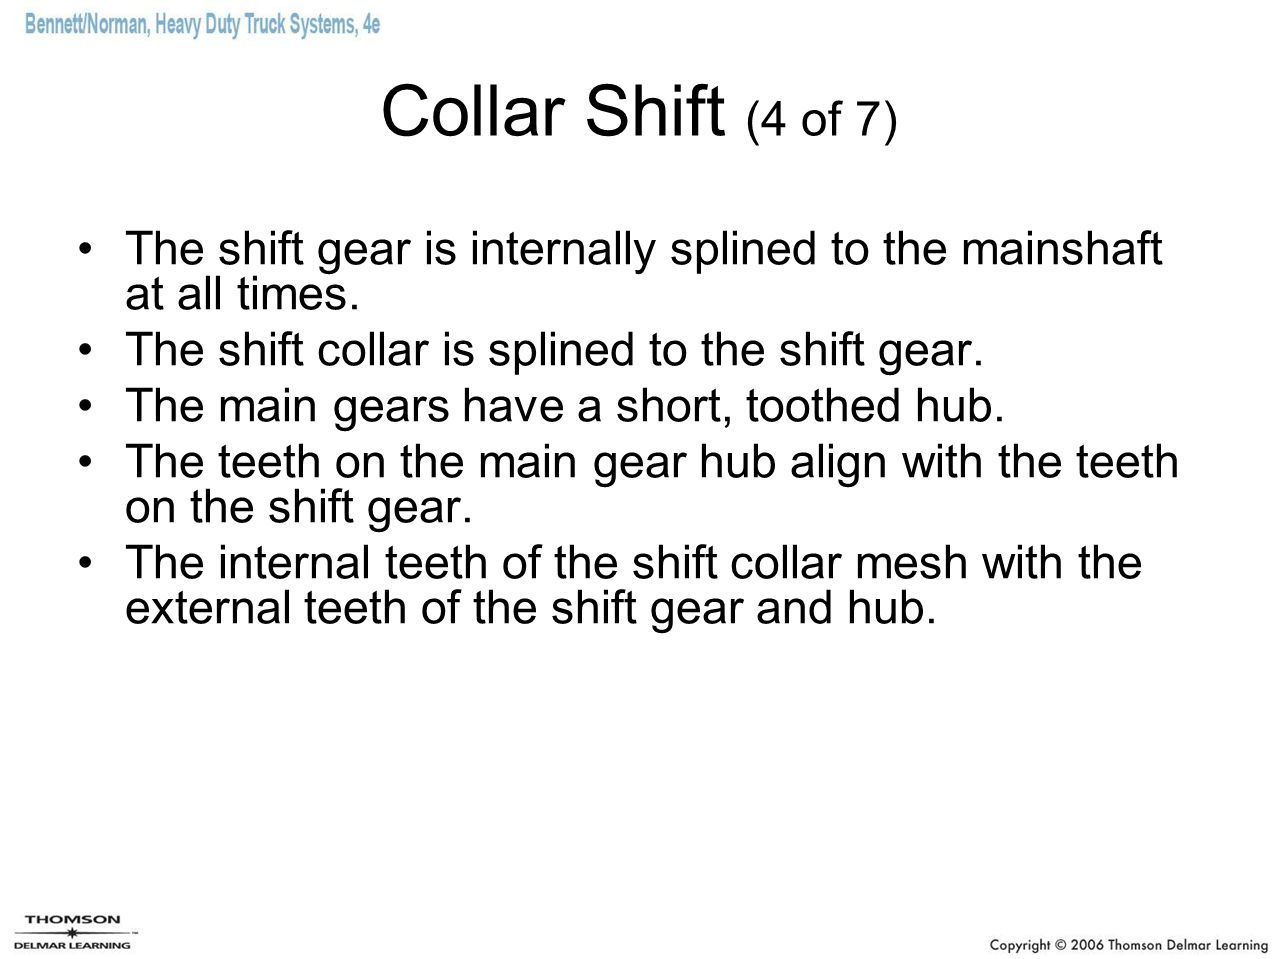 Collar Shift (4 of 7) The shift gear is internally splined to the mainshaft at all times. The shift collar is splined to the shift gear.